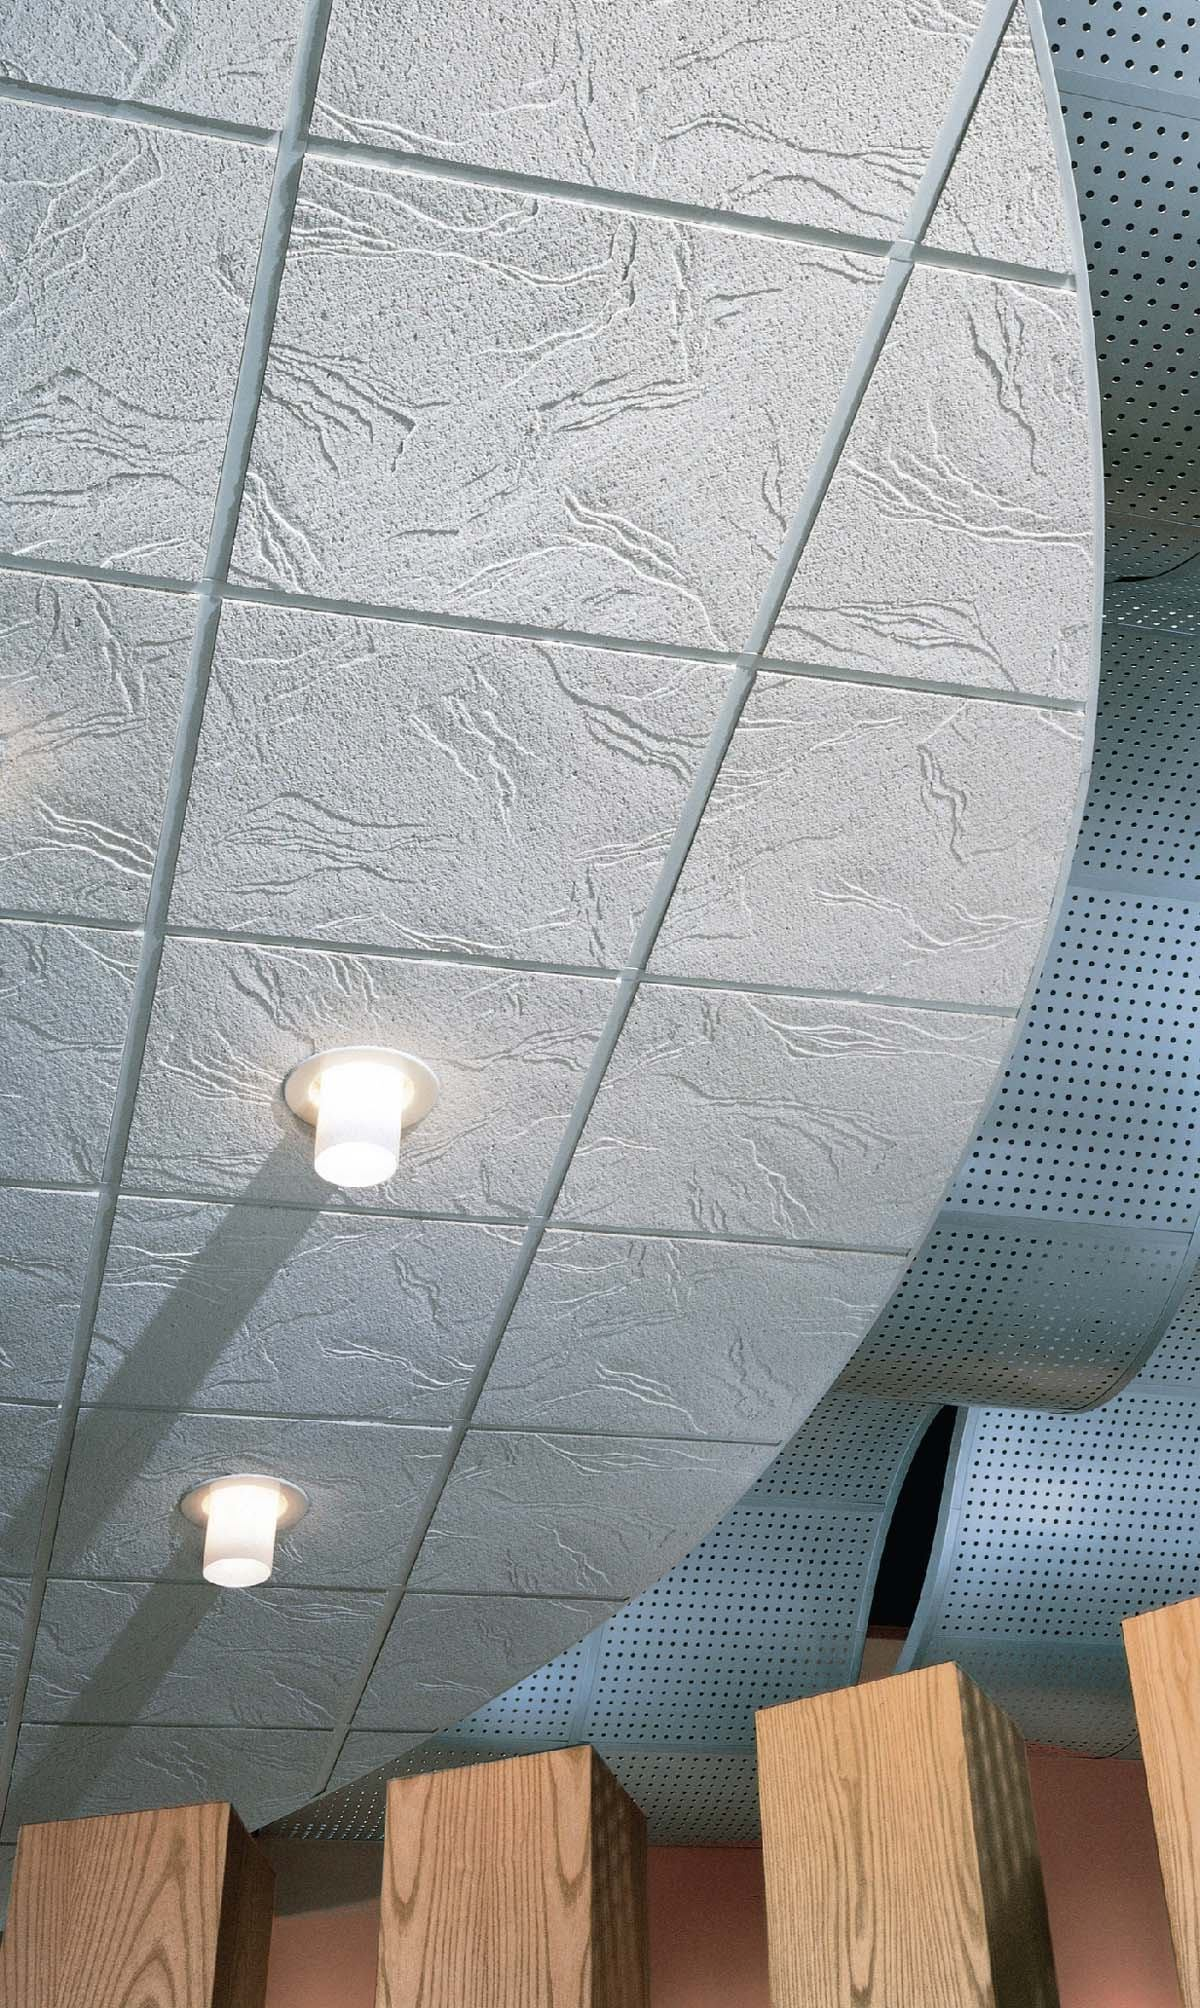 Formaldehyde Free And Low Voc Ceiling Tiles From Usg